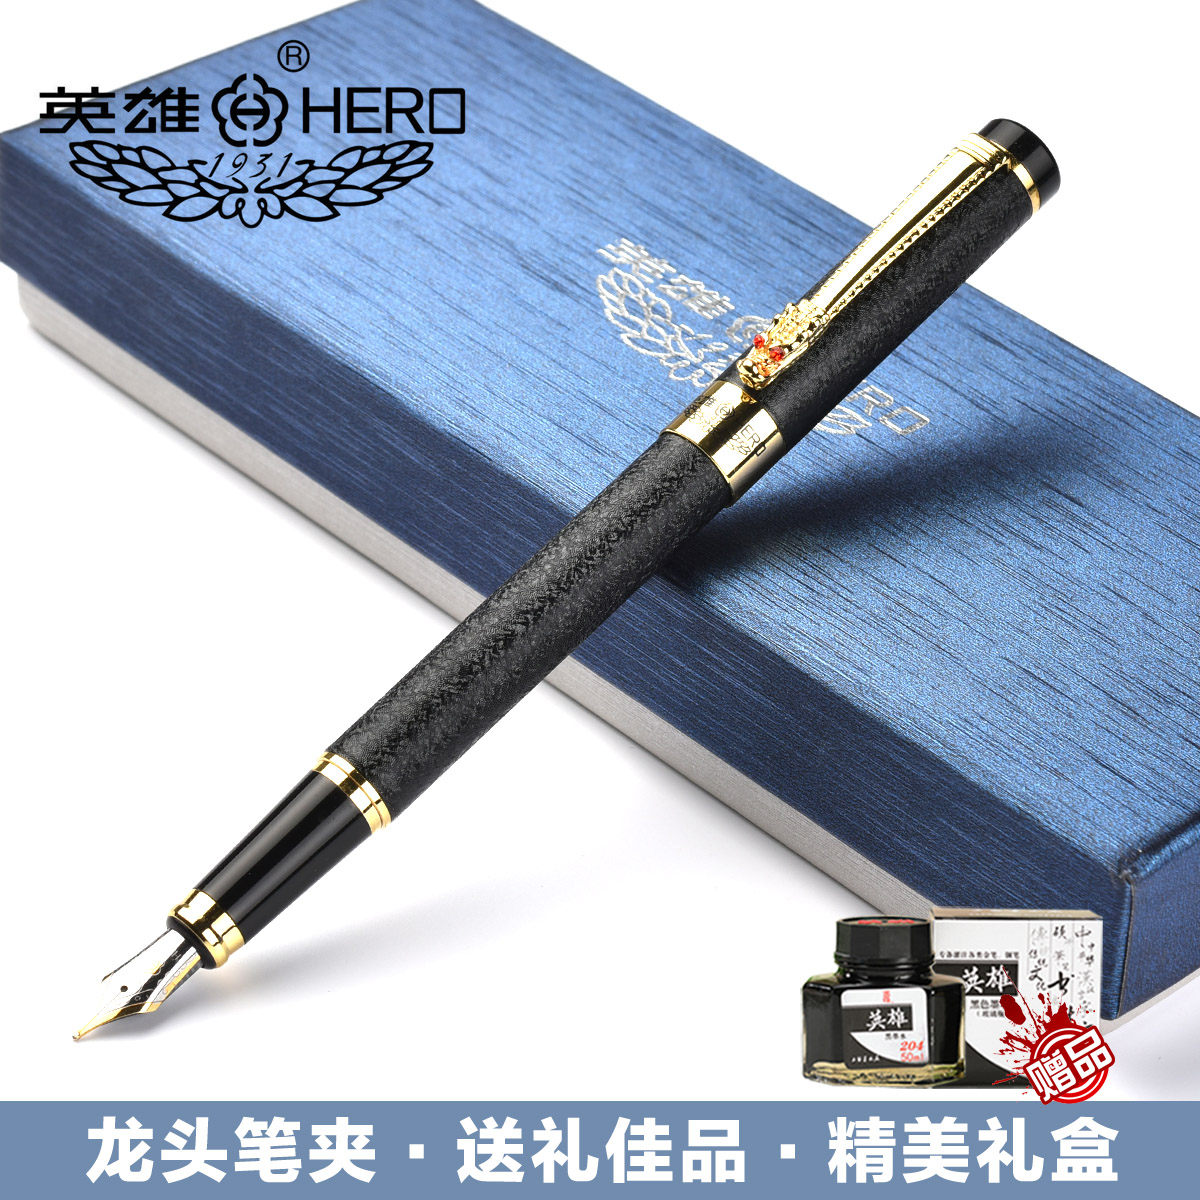 Hero pen 6006 velvet sand leading artists bent tip pen gift pen calligraphy painting dedicated